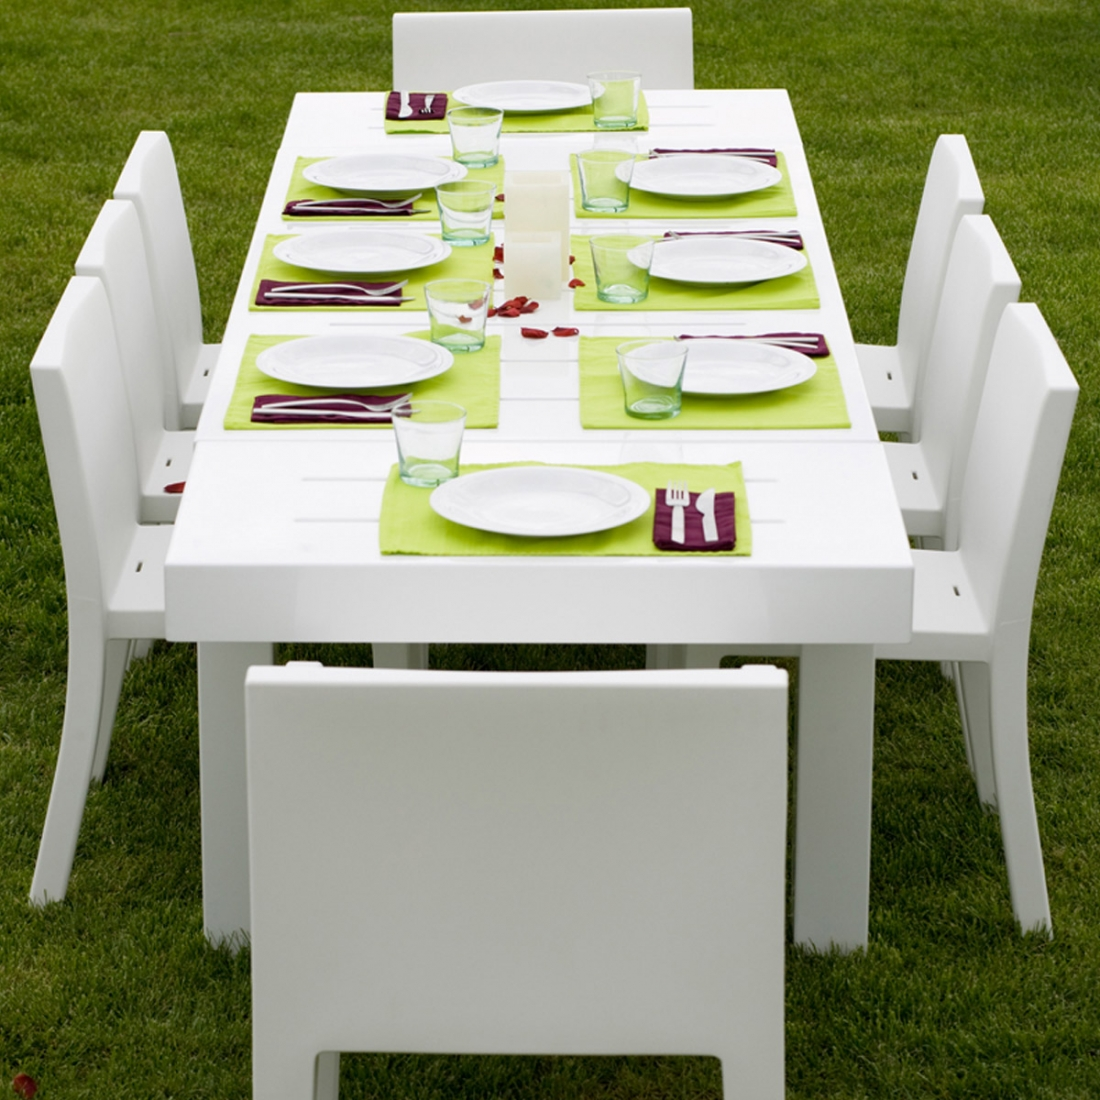 Table de jardin design 12 personnes jut par vondom for Design exterieur jardin